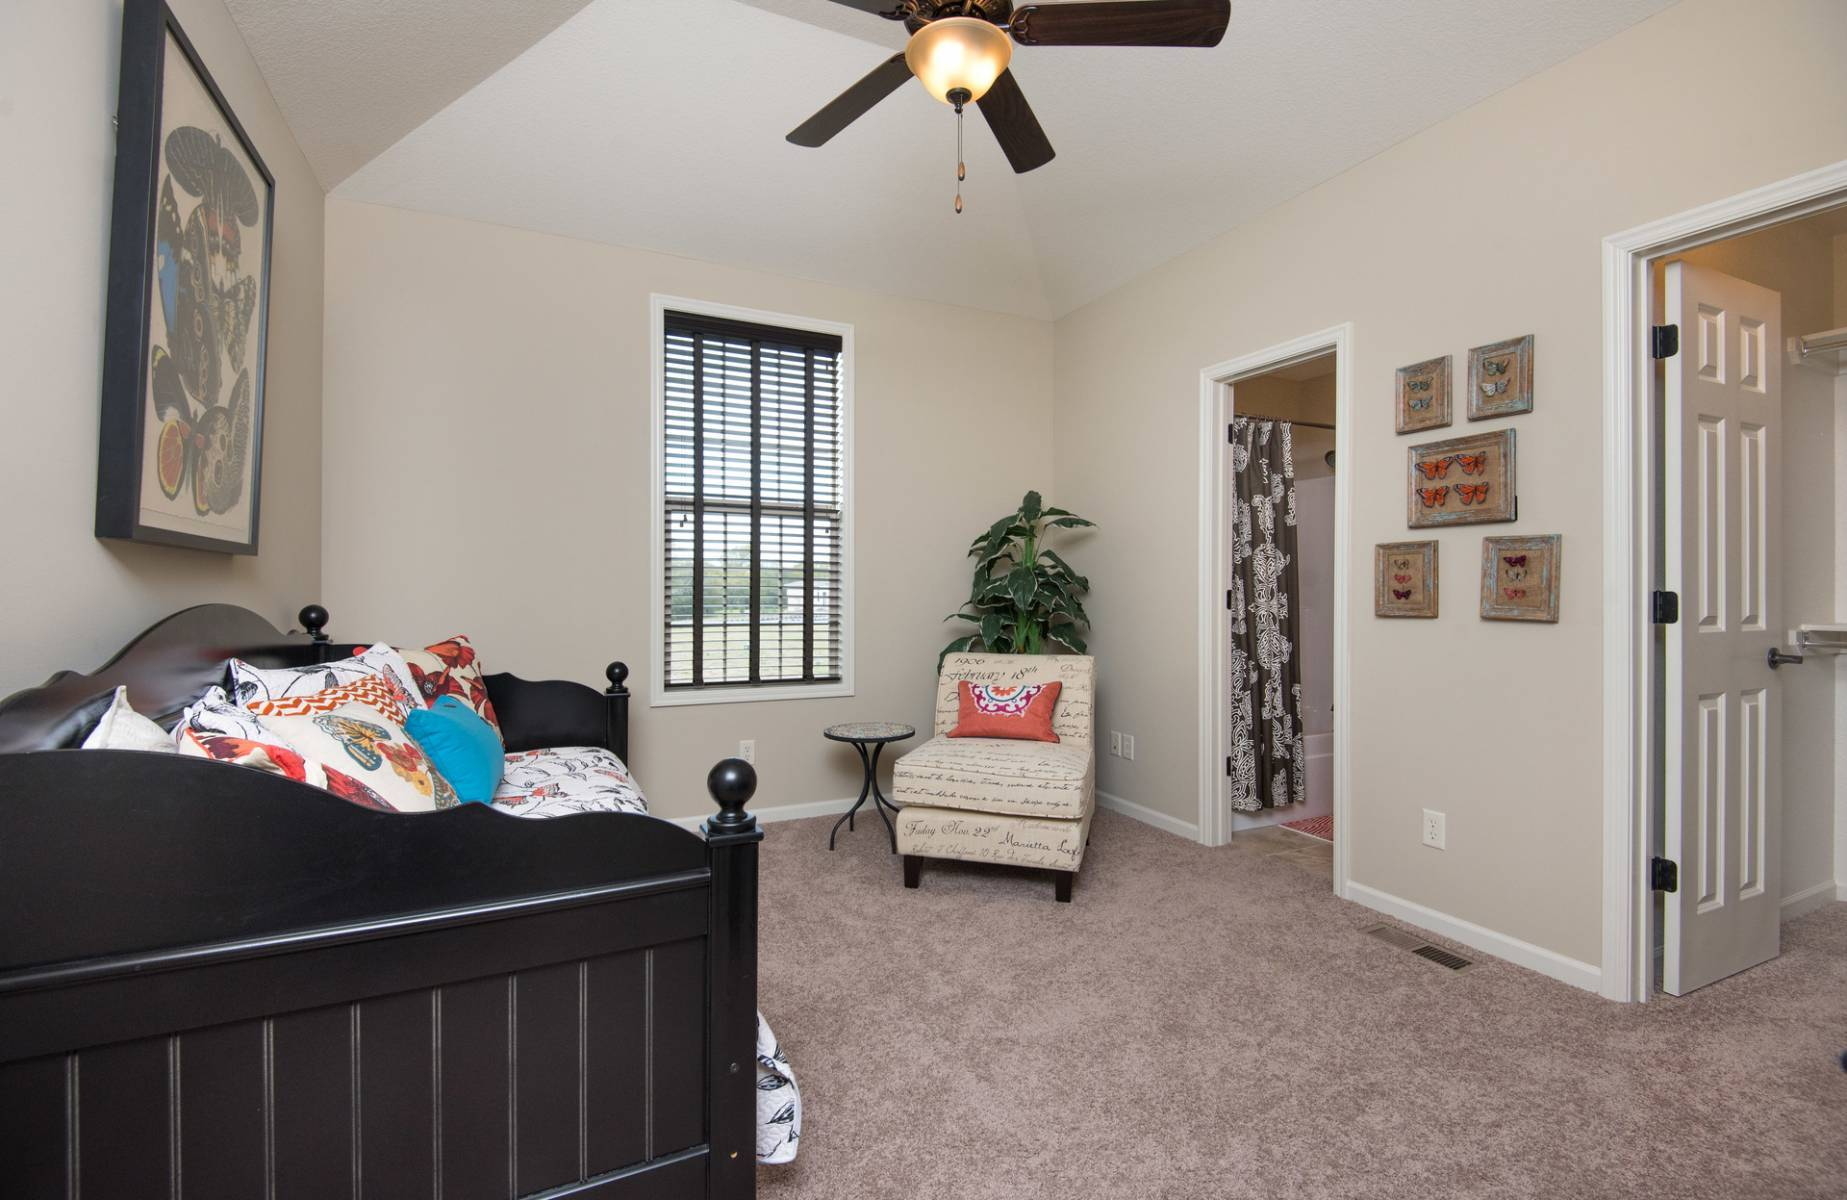 Bedroom featured in the Prescott By Summit Homes in Kansas City, MO